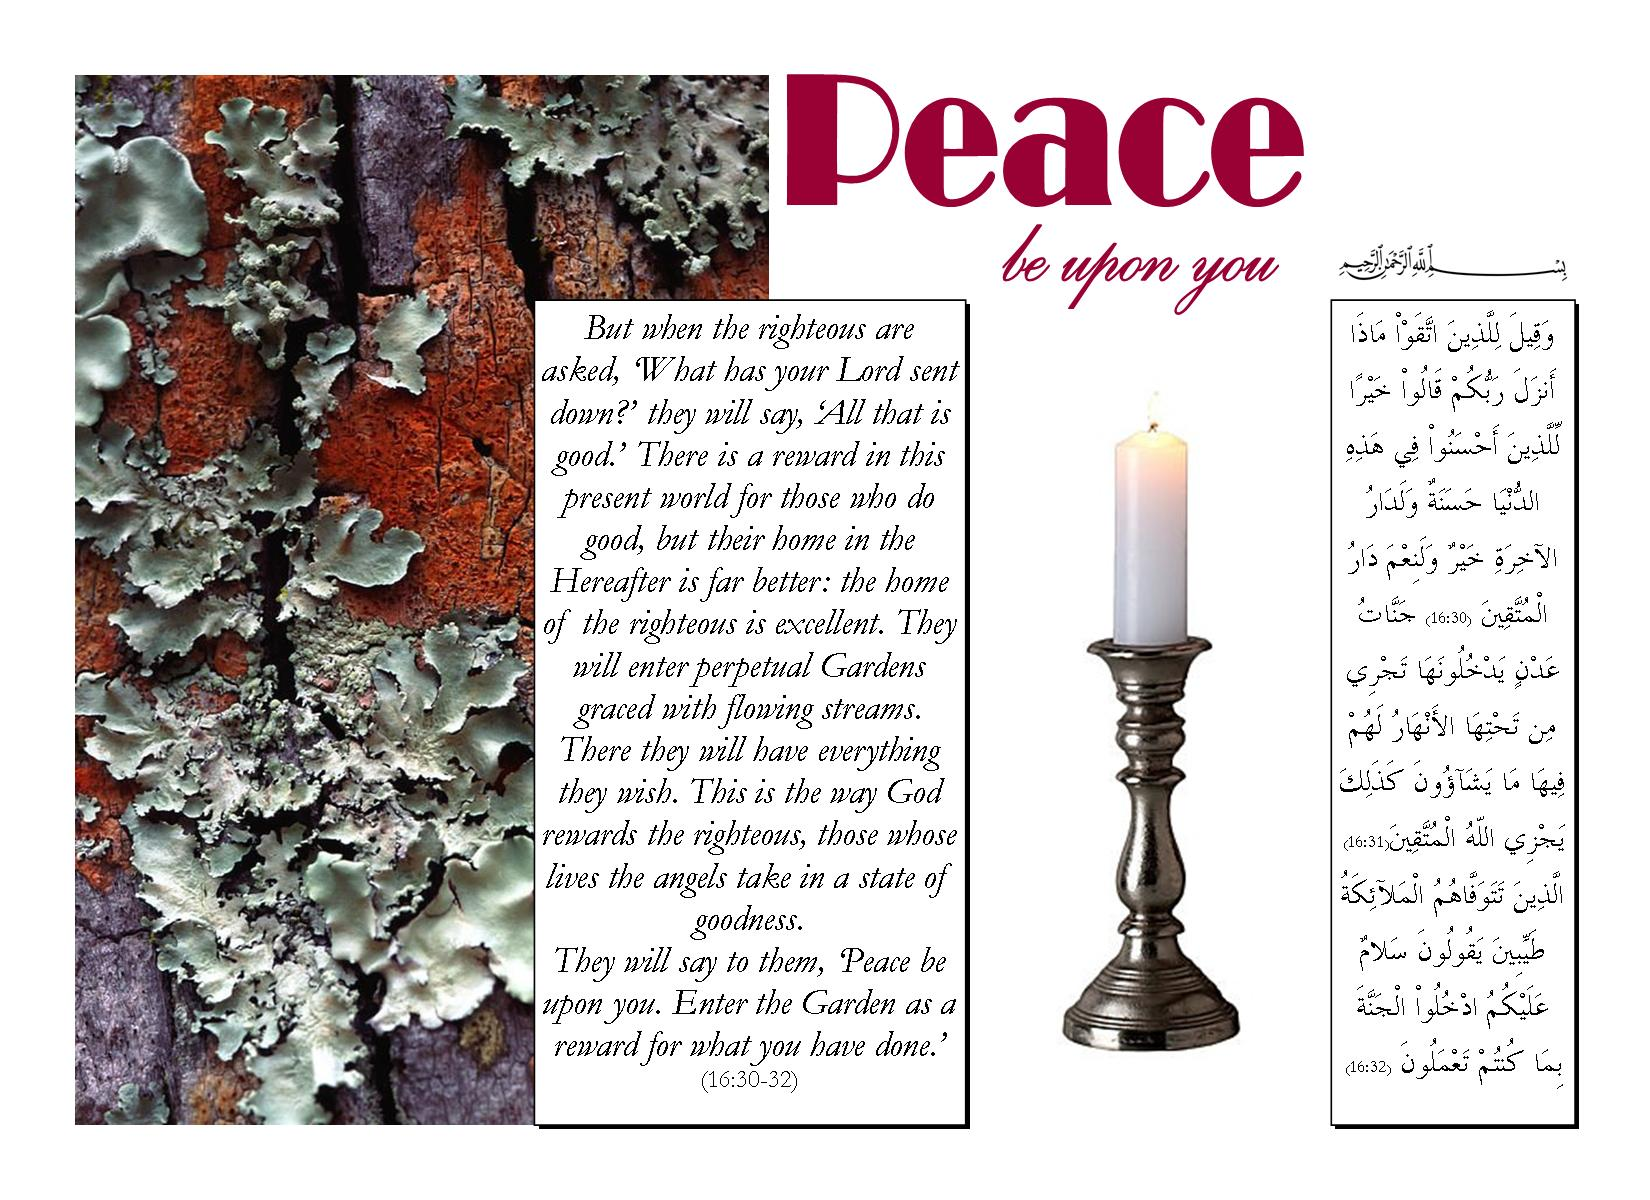 Peace be upon you!